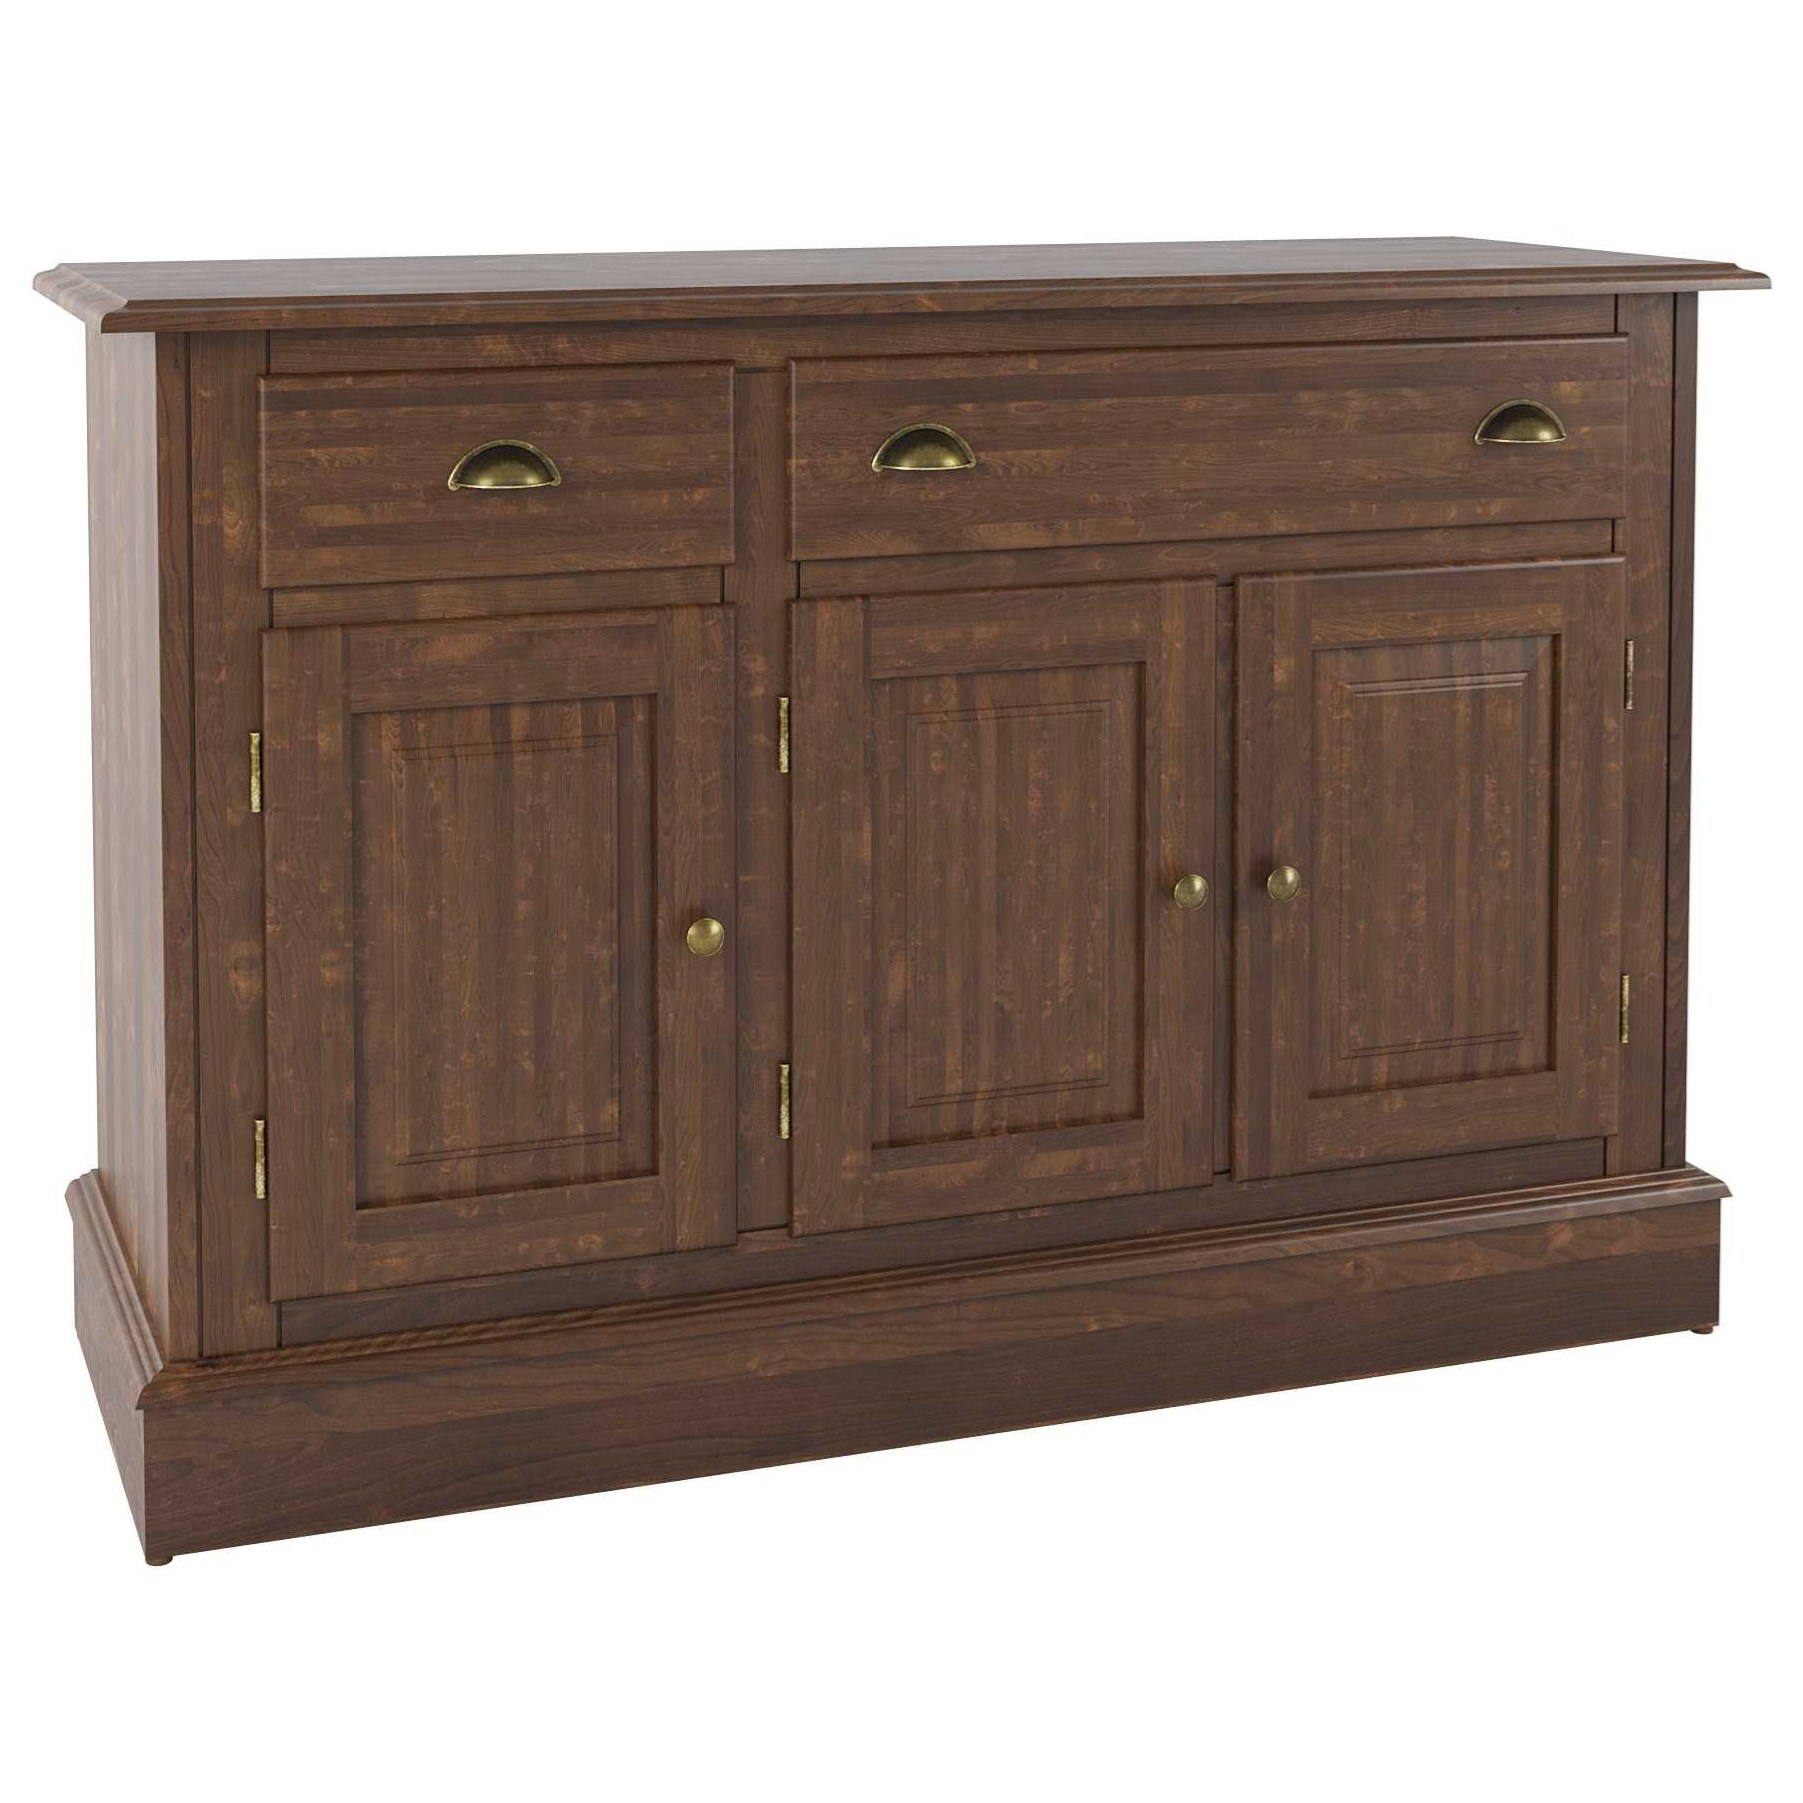 Core - Custom Dining Customizable Buffet by Canadel at Steger's Furniture